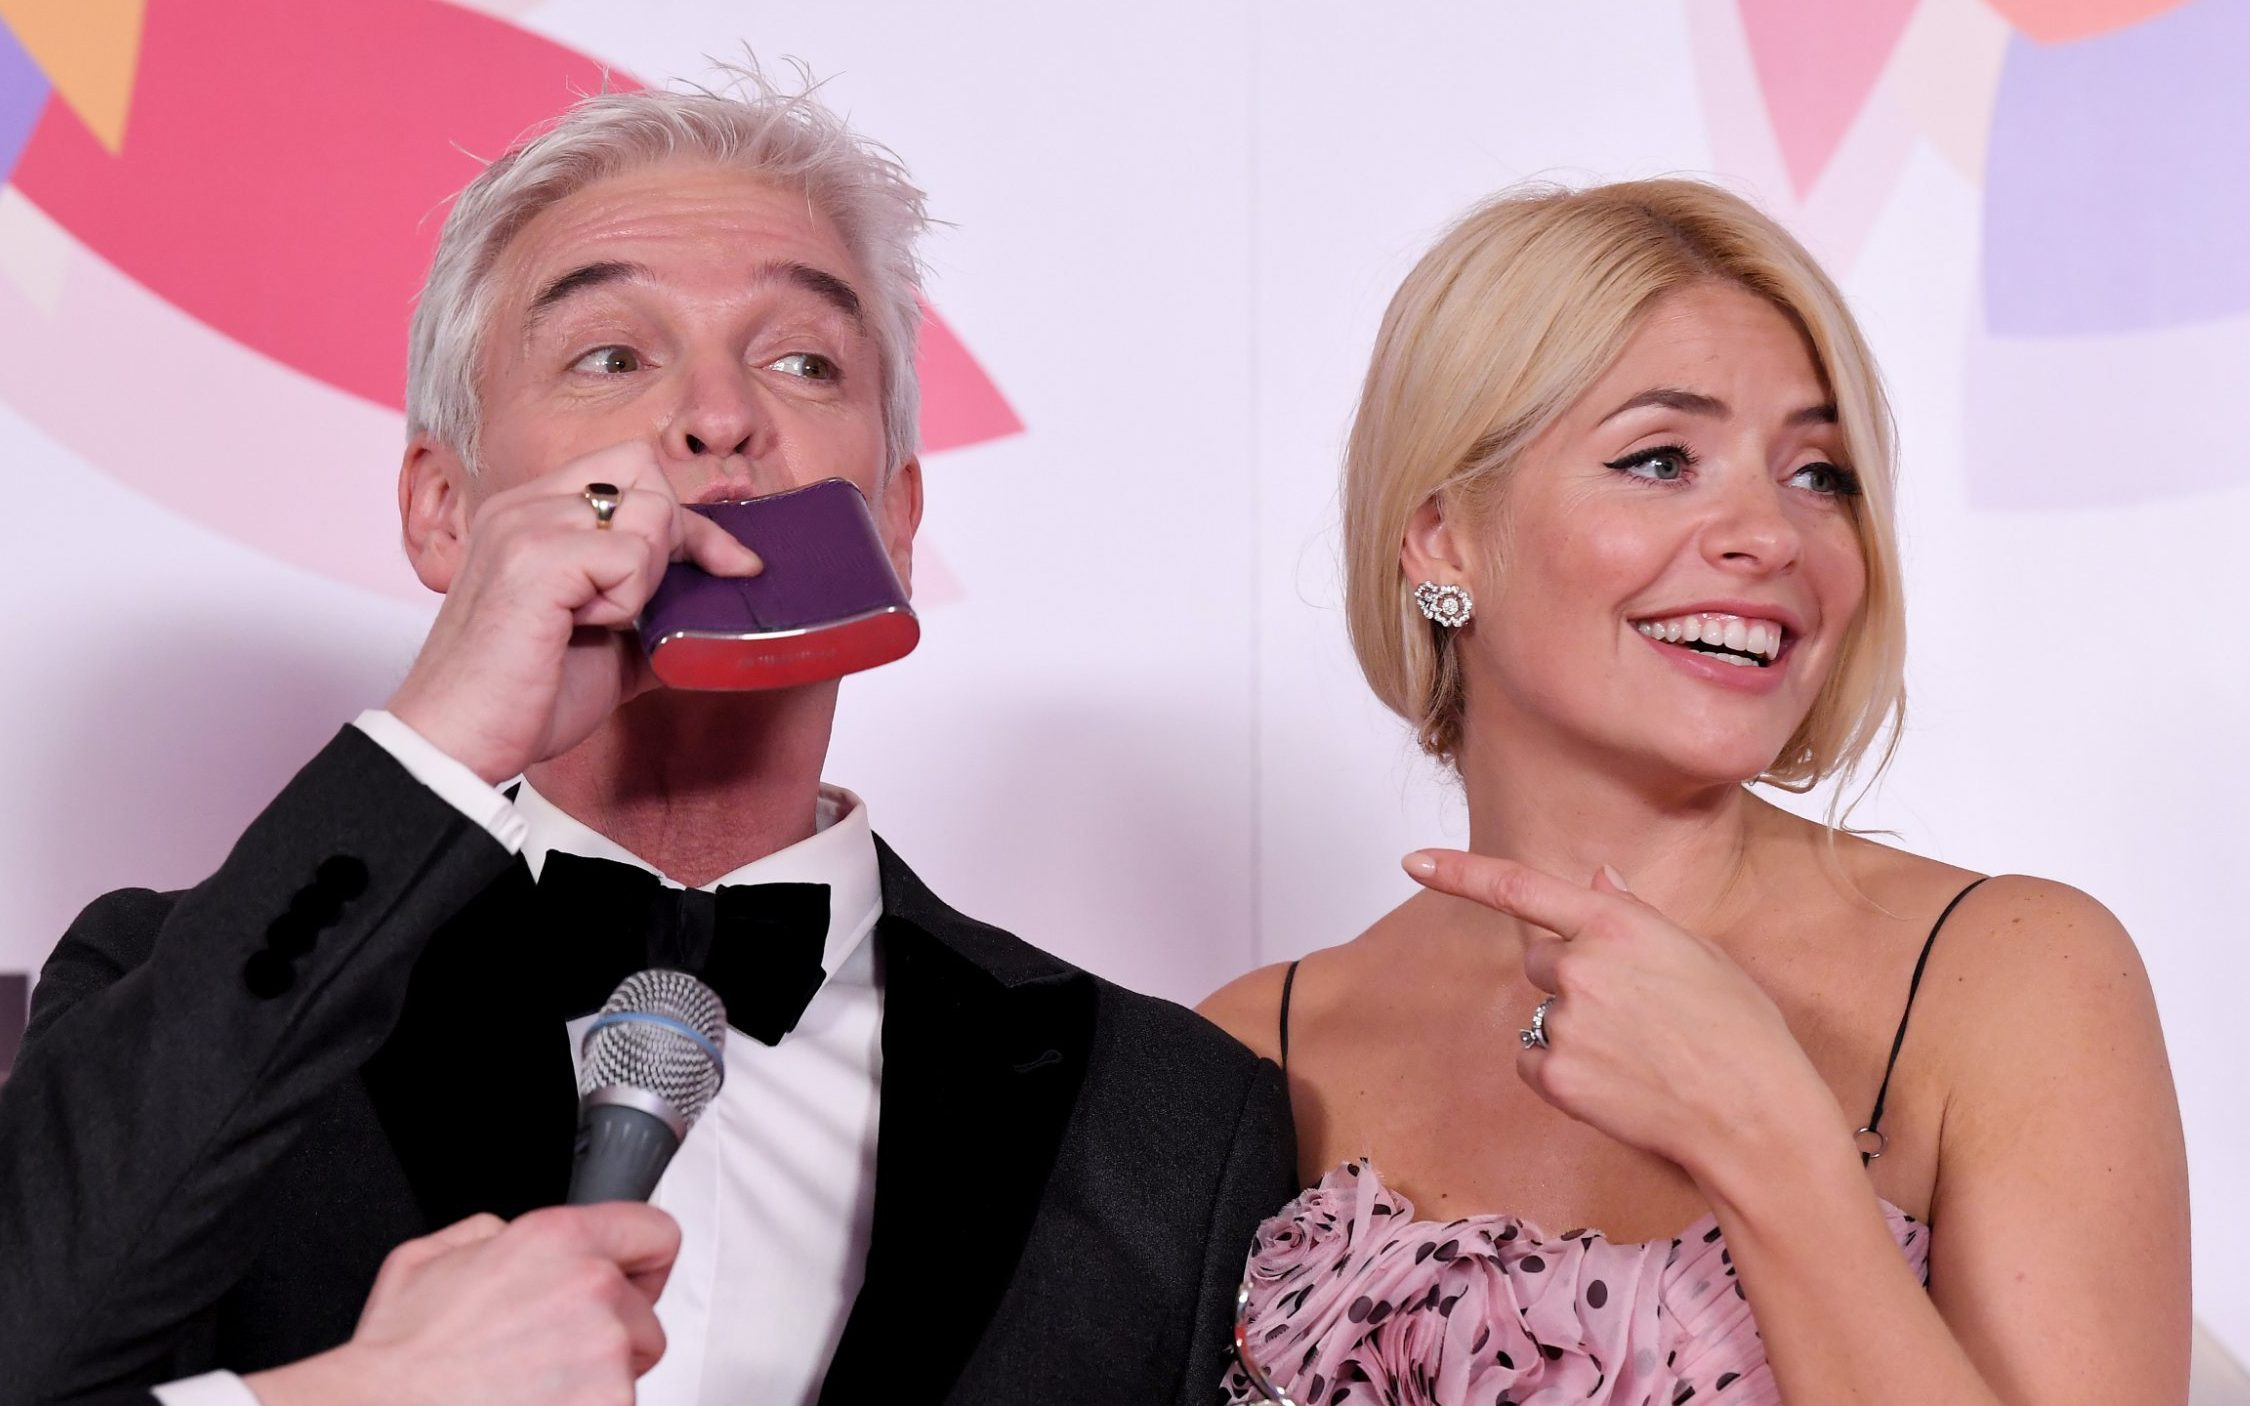 Unearthed interview reveals Phillip Schofield partied with hookers as Holly Willoughby admits to on-air madness